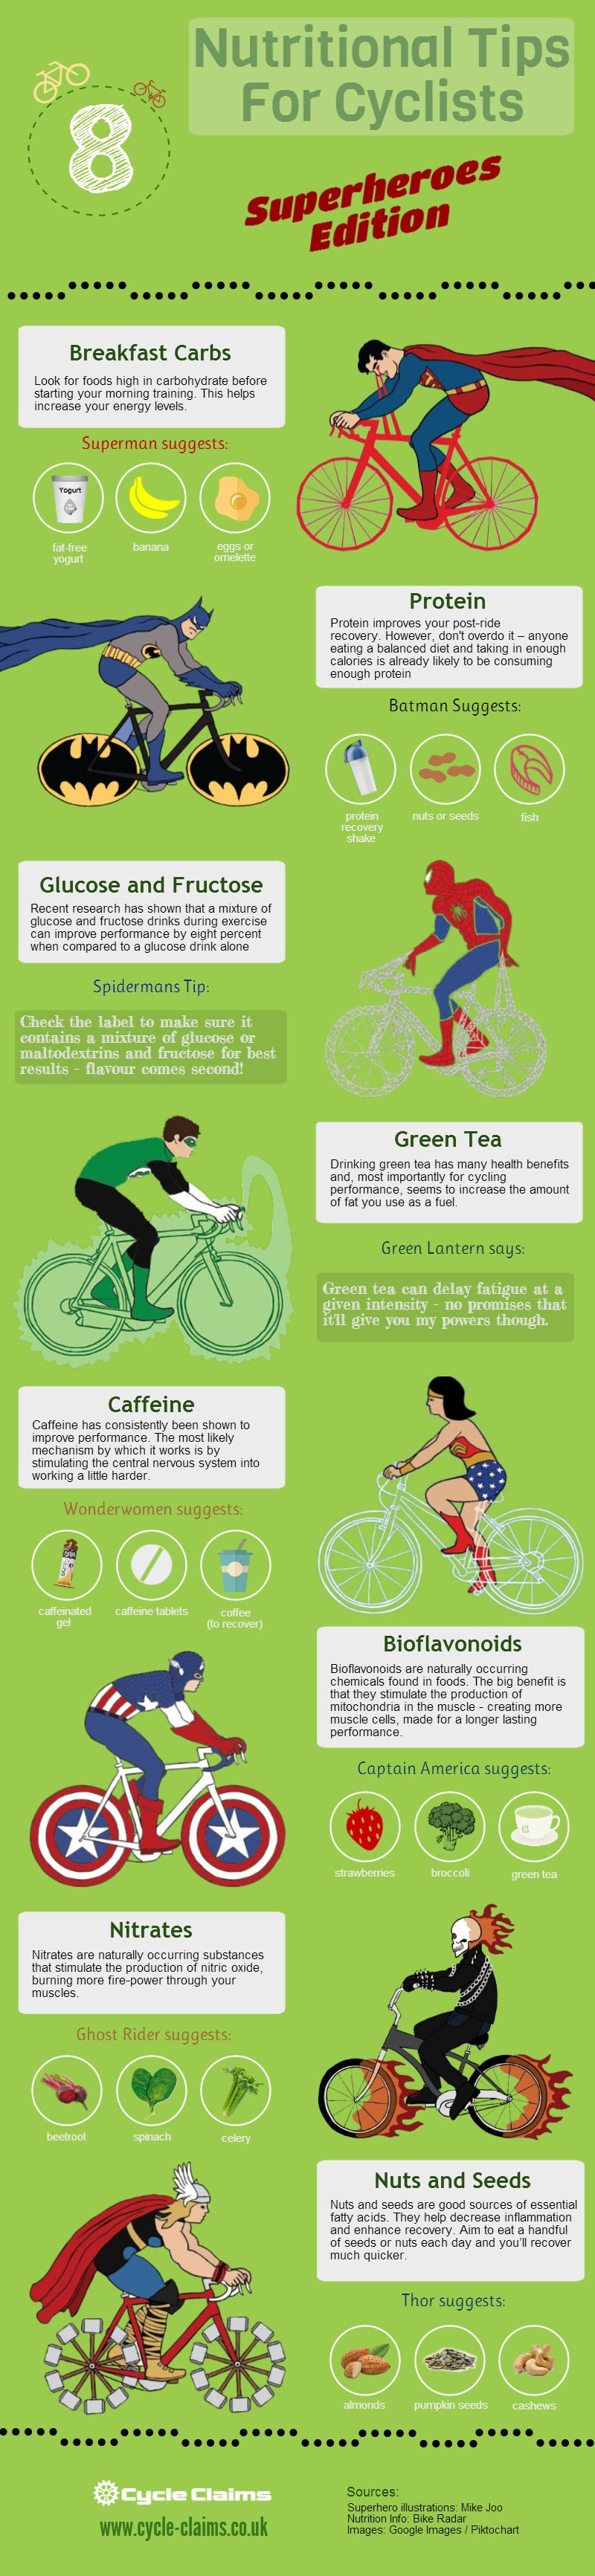 Infographic: 8 Nutritional Tips For Cyclists #infographic